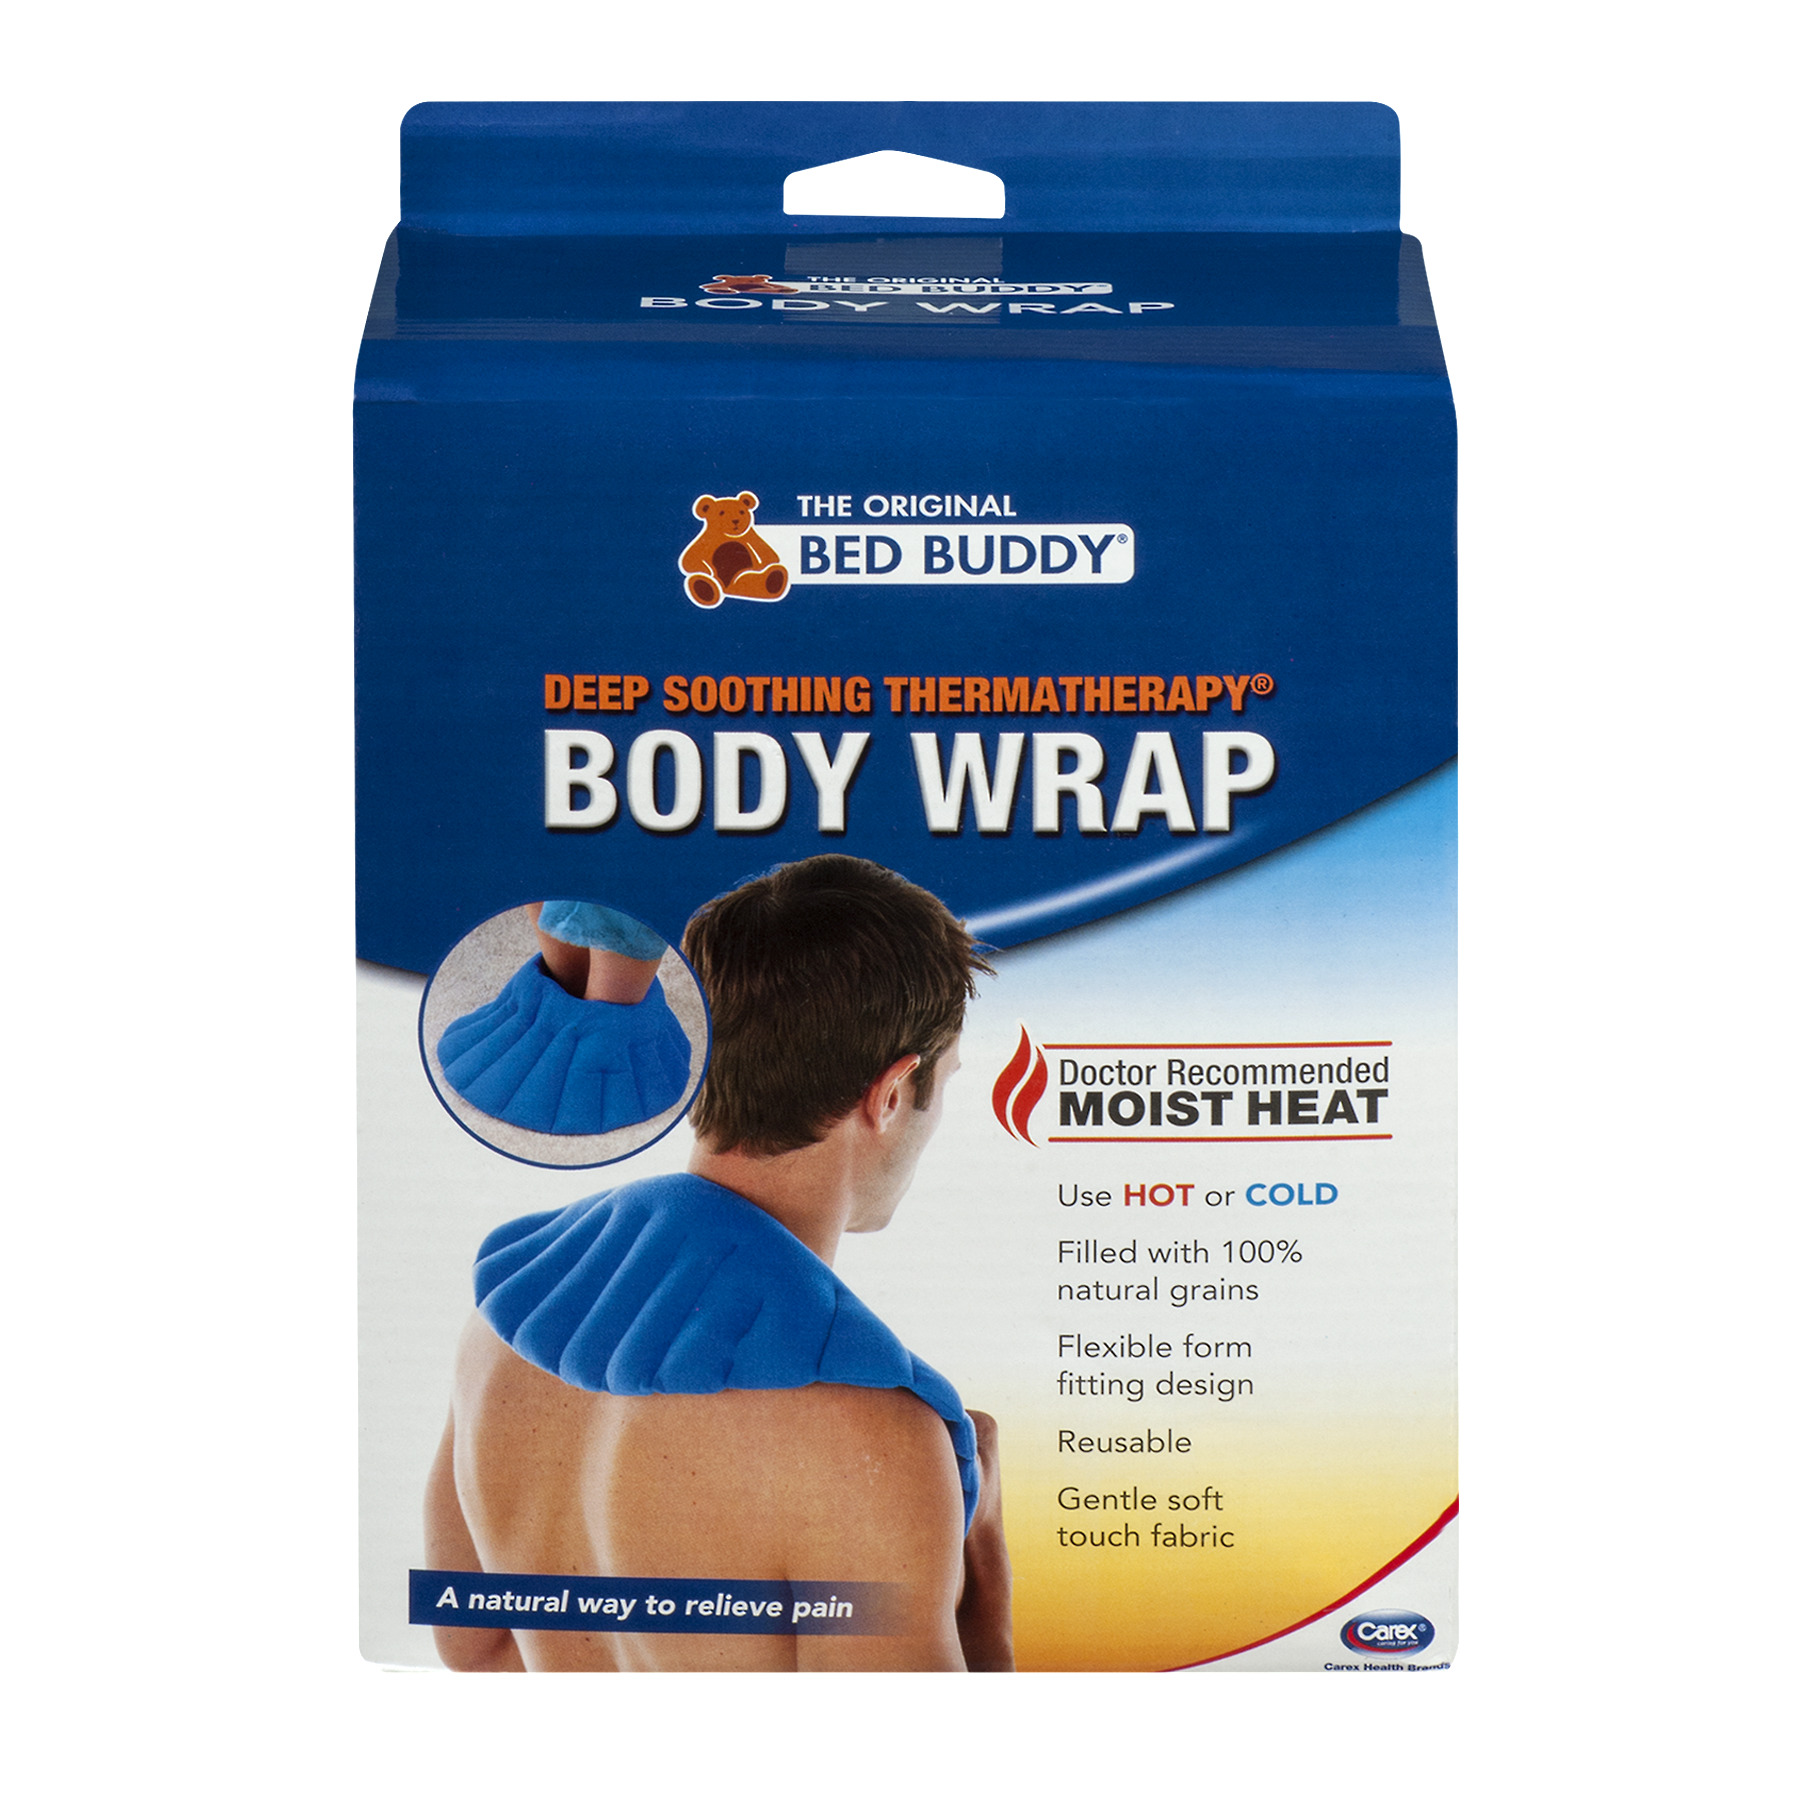 The Original Bed Buddy Deep Soothing Thermatherapy Body Wrap, 1.0 CT